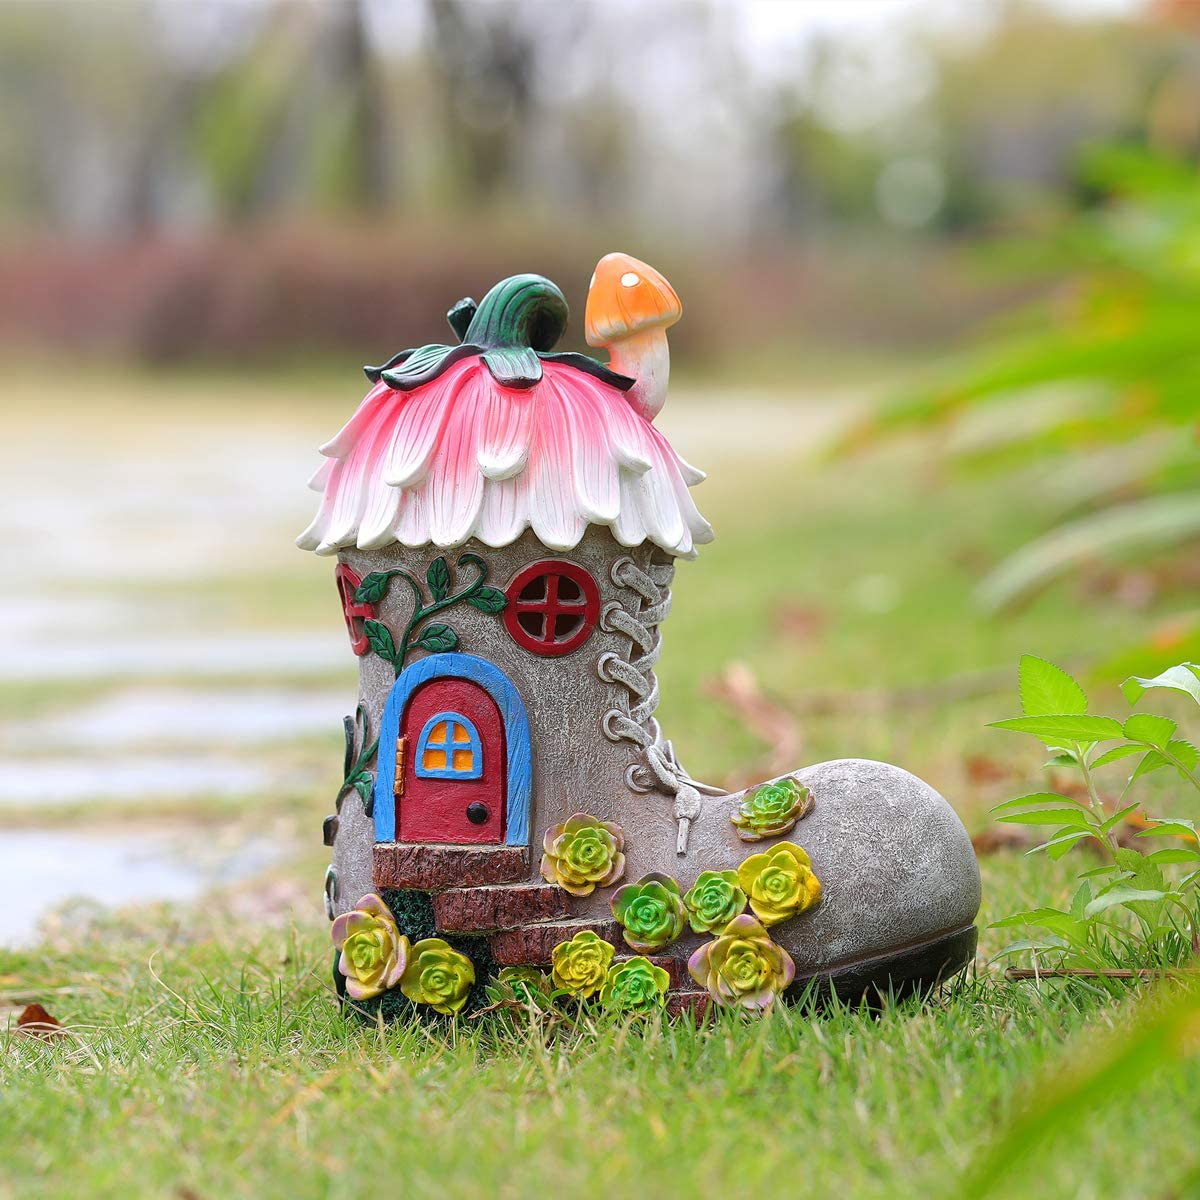 Fairy Boot House Garden Statues and Outdoor Decor,Garden Figurines with Solar Powered Lights for Patio Yard Lawn Gardening Gifts,7.9x4.4x9.1 Inch